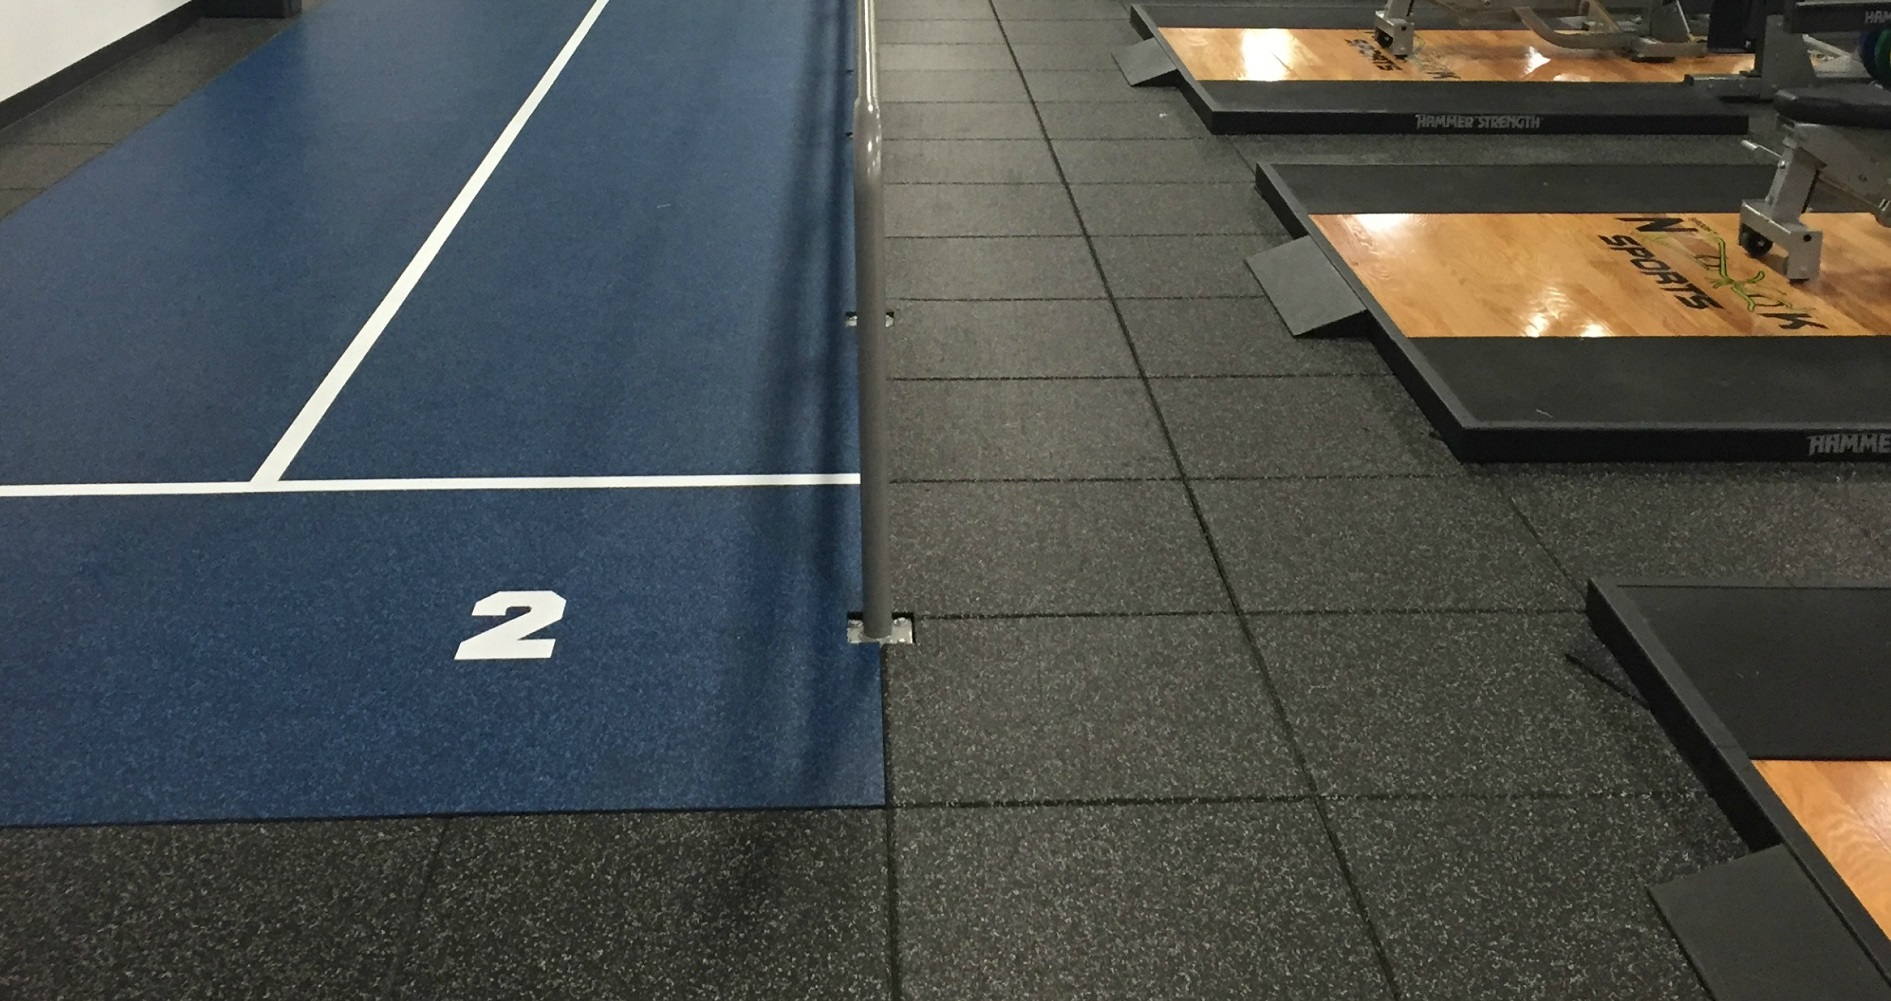 Rubber flooring rubber tiles rubber floors manufacturer gym flooring dailygadgetfo Choice Image